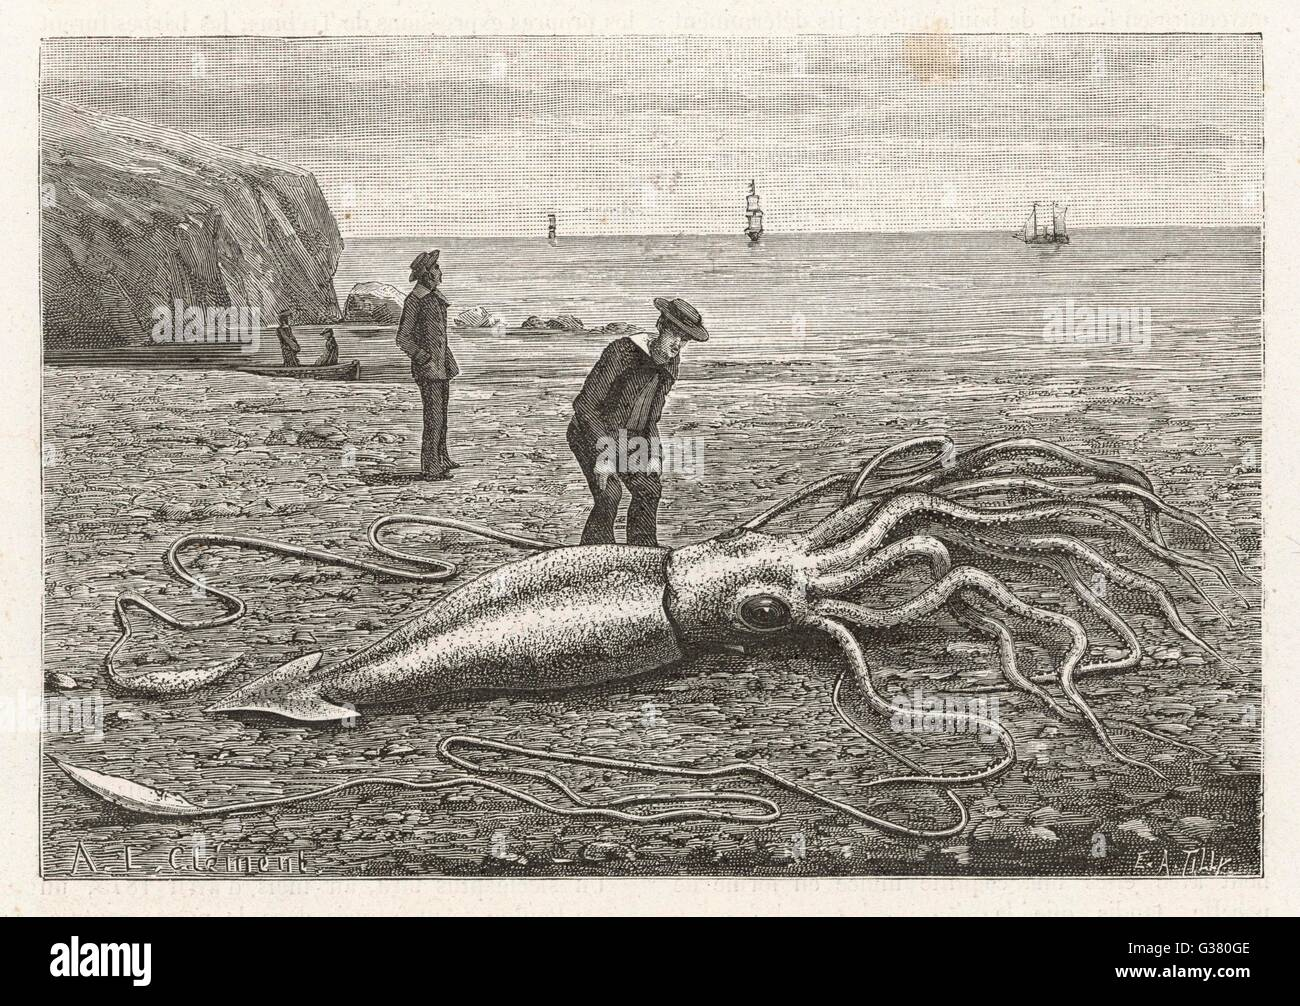 ARCHITEUTHIS PRINCEPS stranded on a Newfoundland beach        Date: 1883 - Stock Image